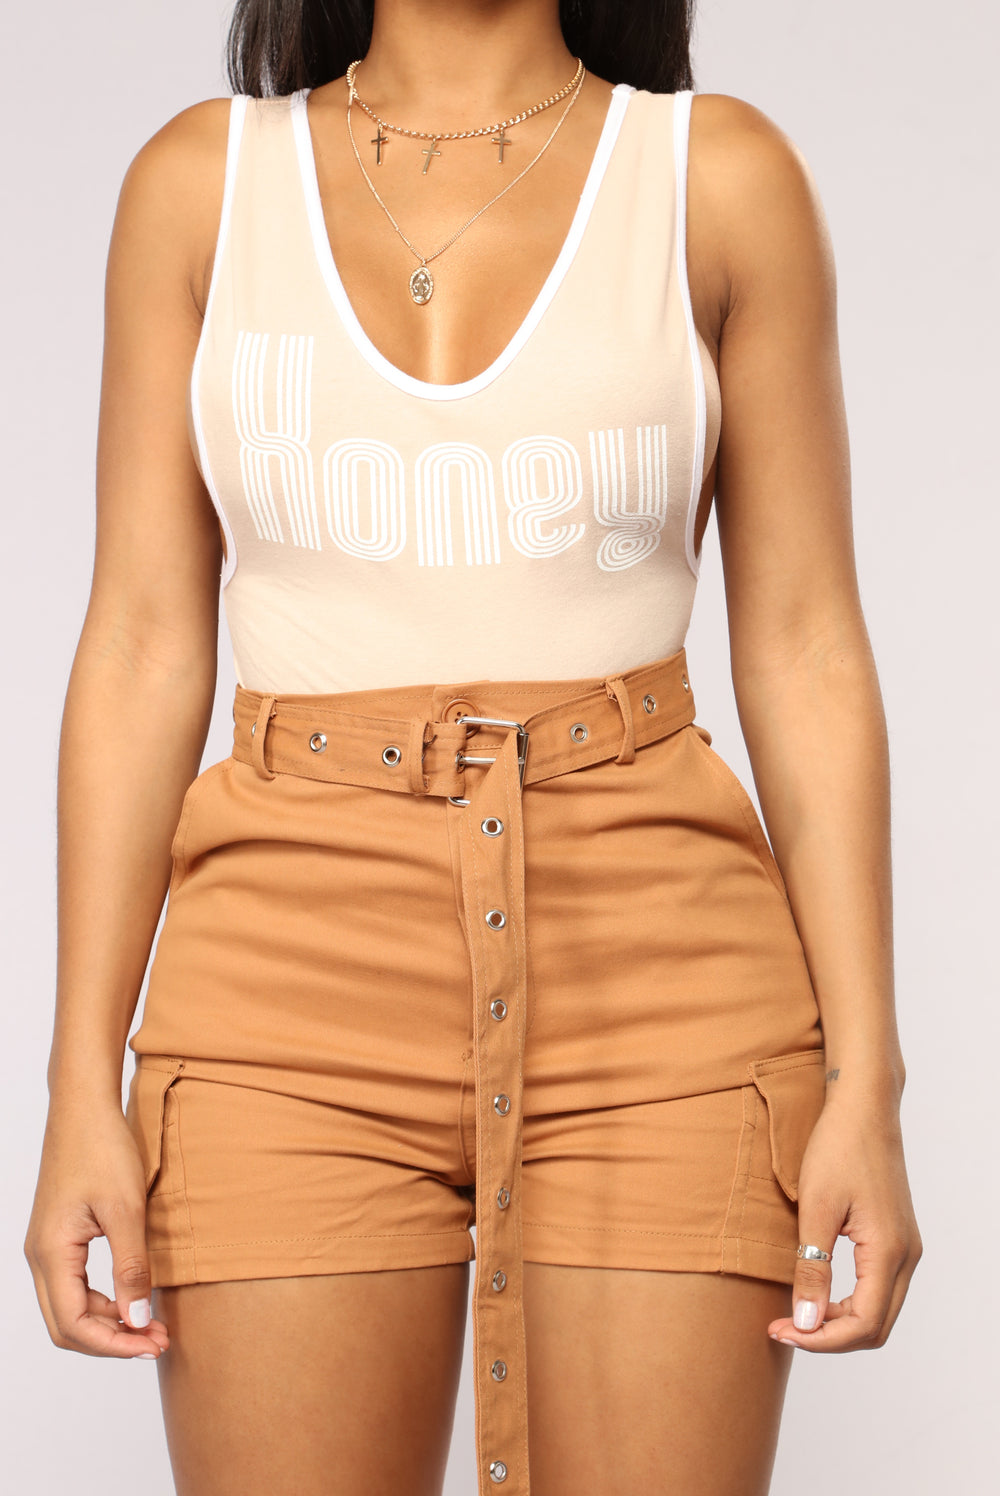 Stuck Like Honey Bodysuit - Beige